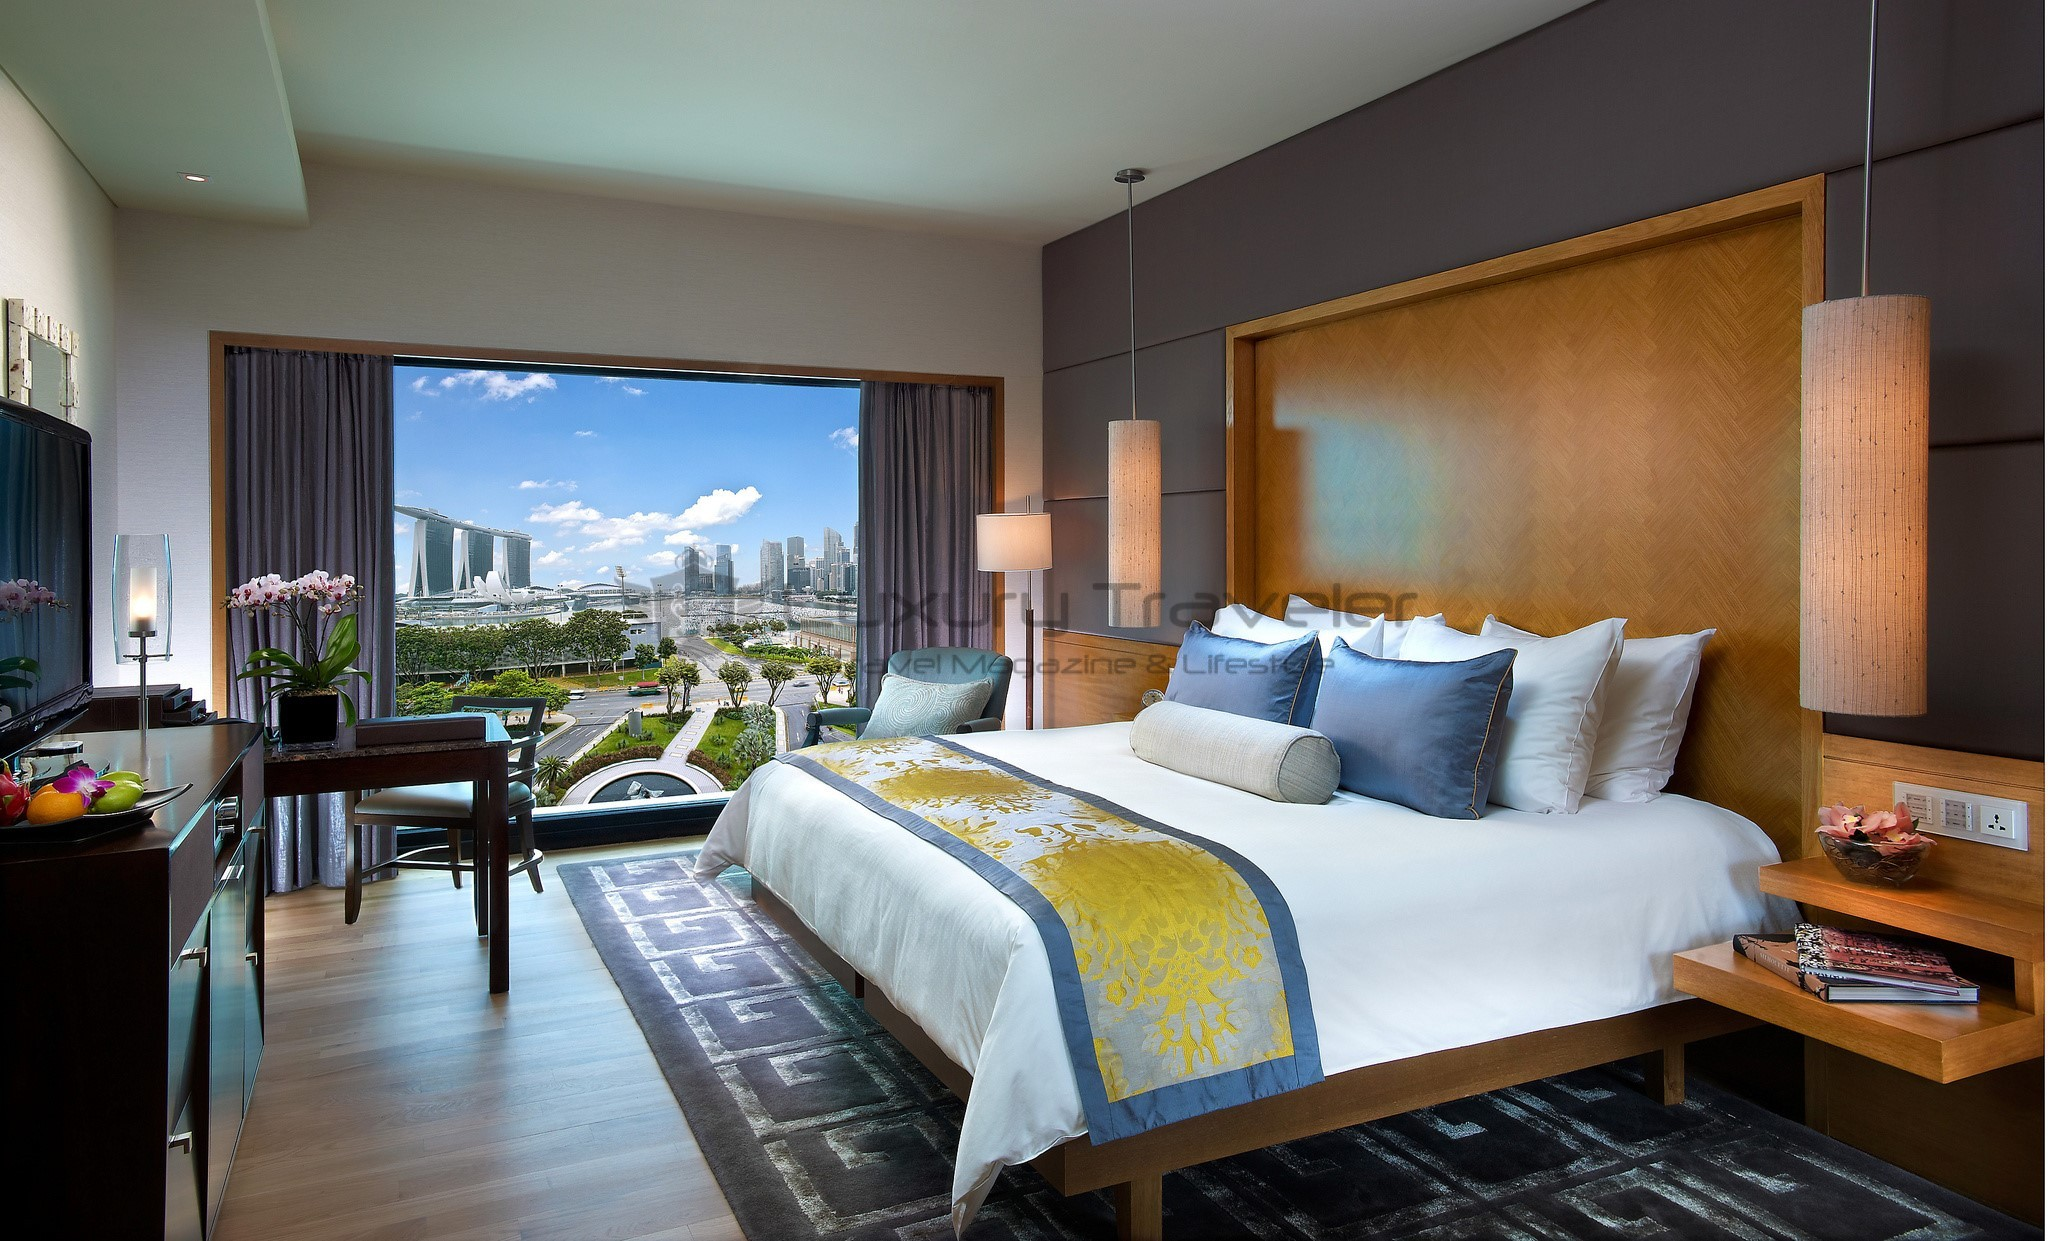 Mandarin oriental singapore luxury 5 star hotel luxury for 5 star hotels in